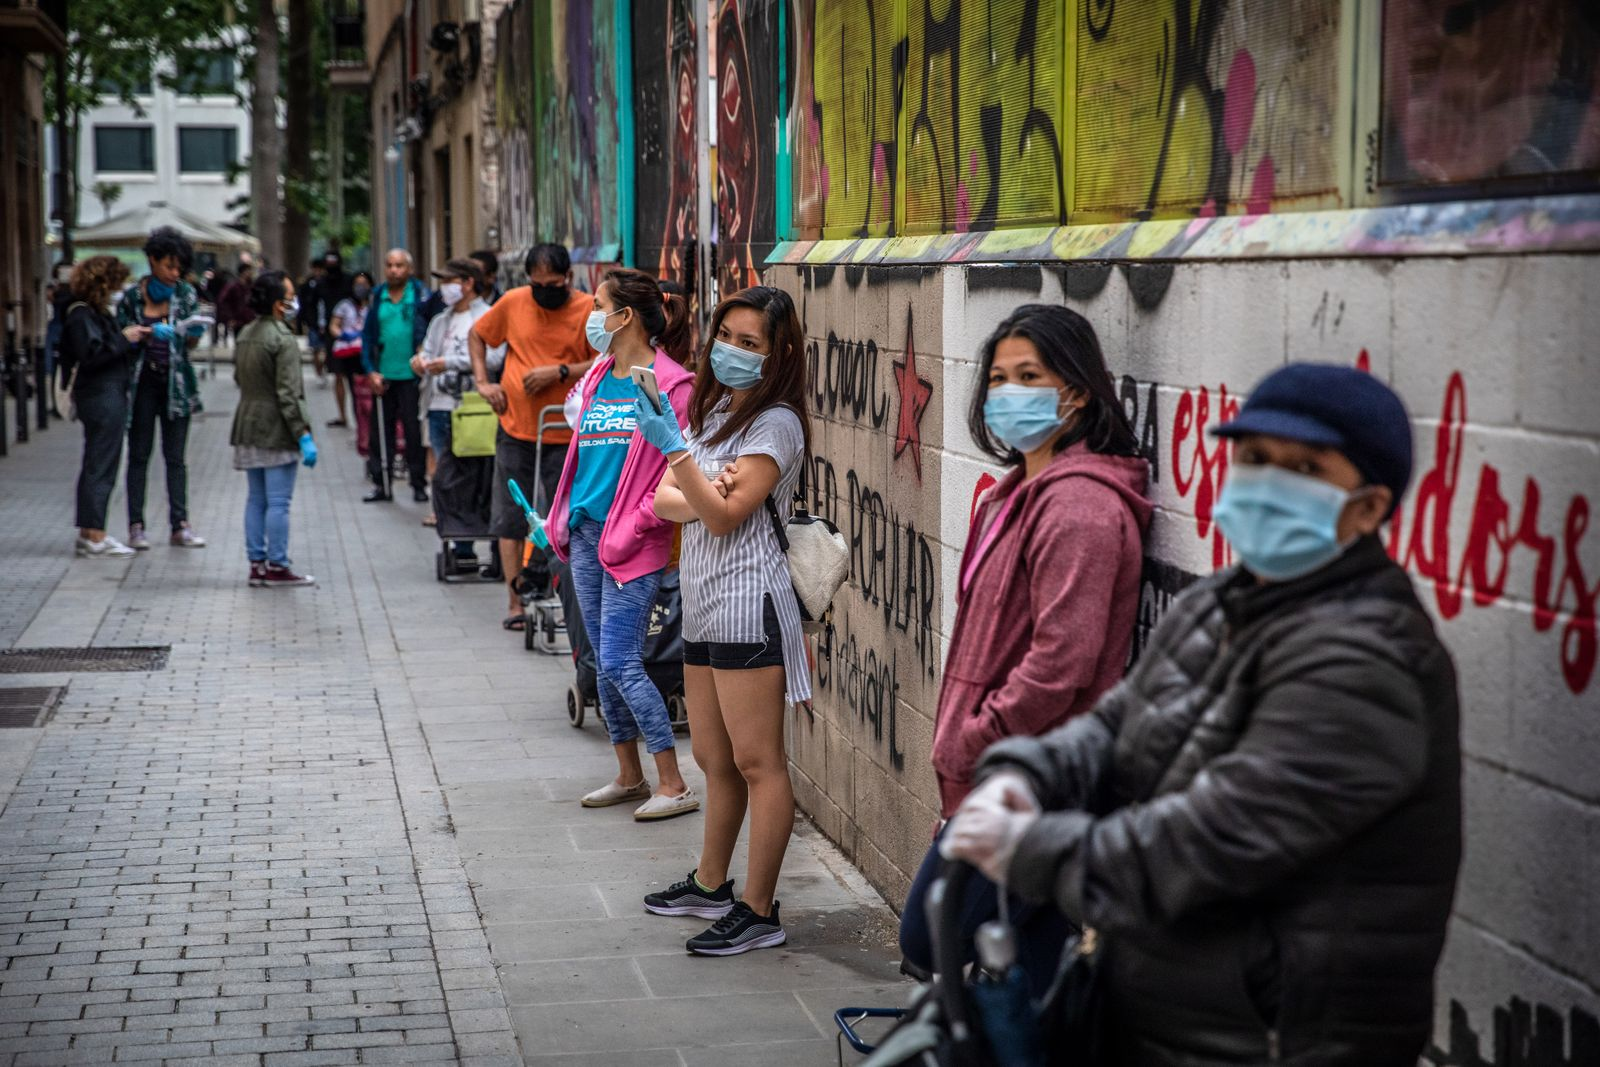 Spain Sees Food Bank Queues in Virus Hit Economy